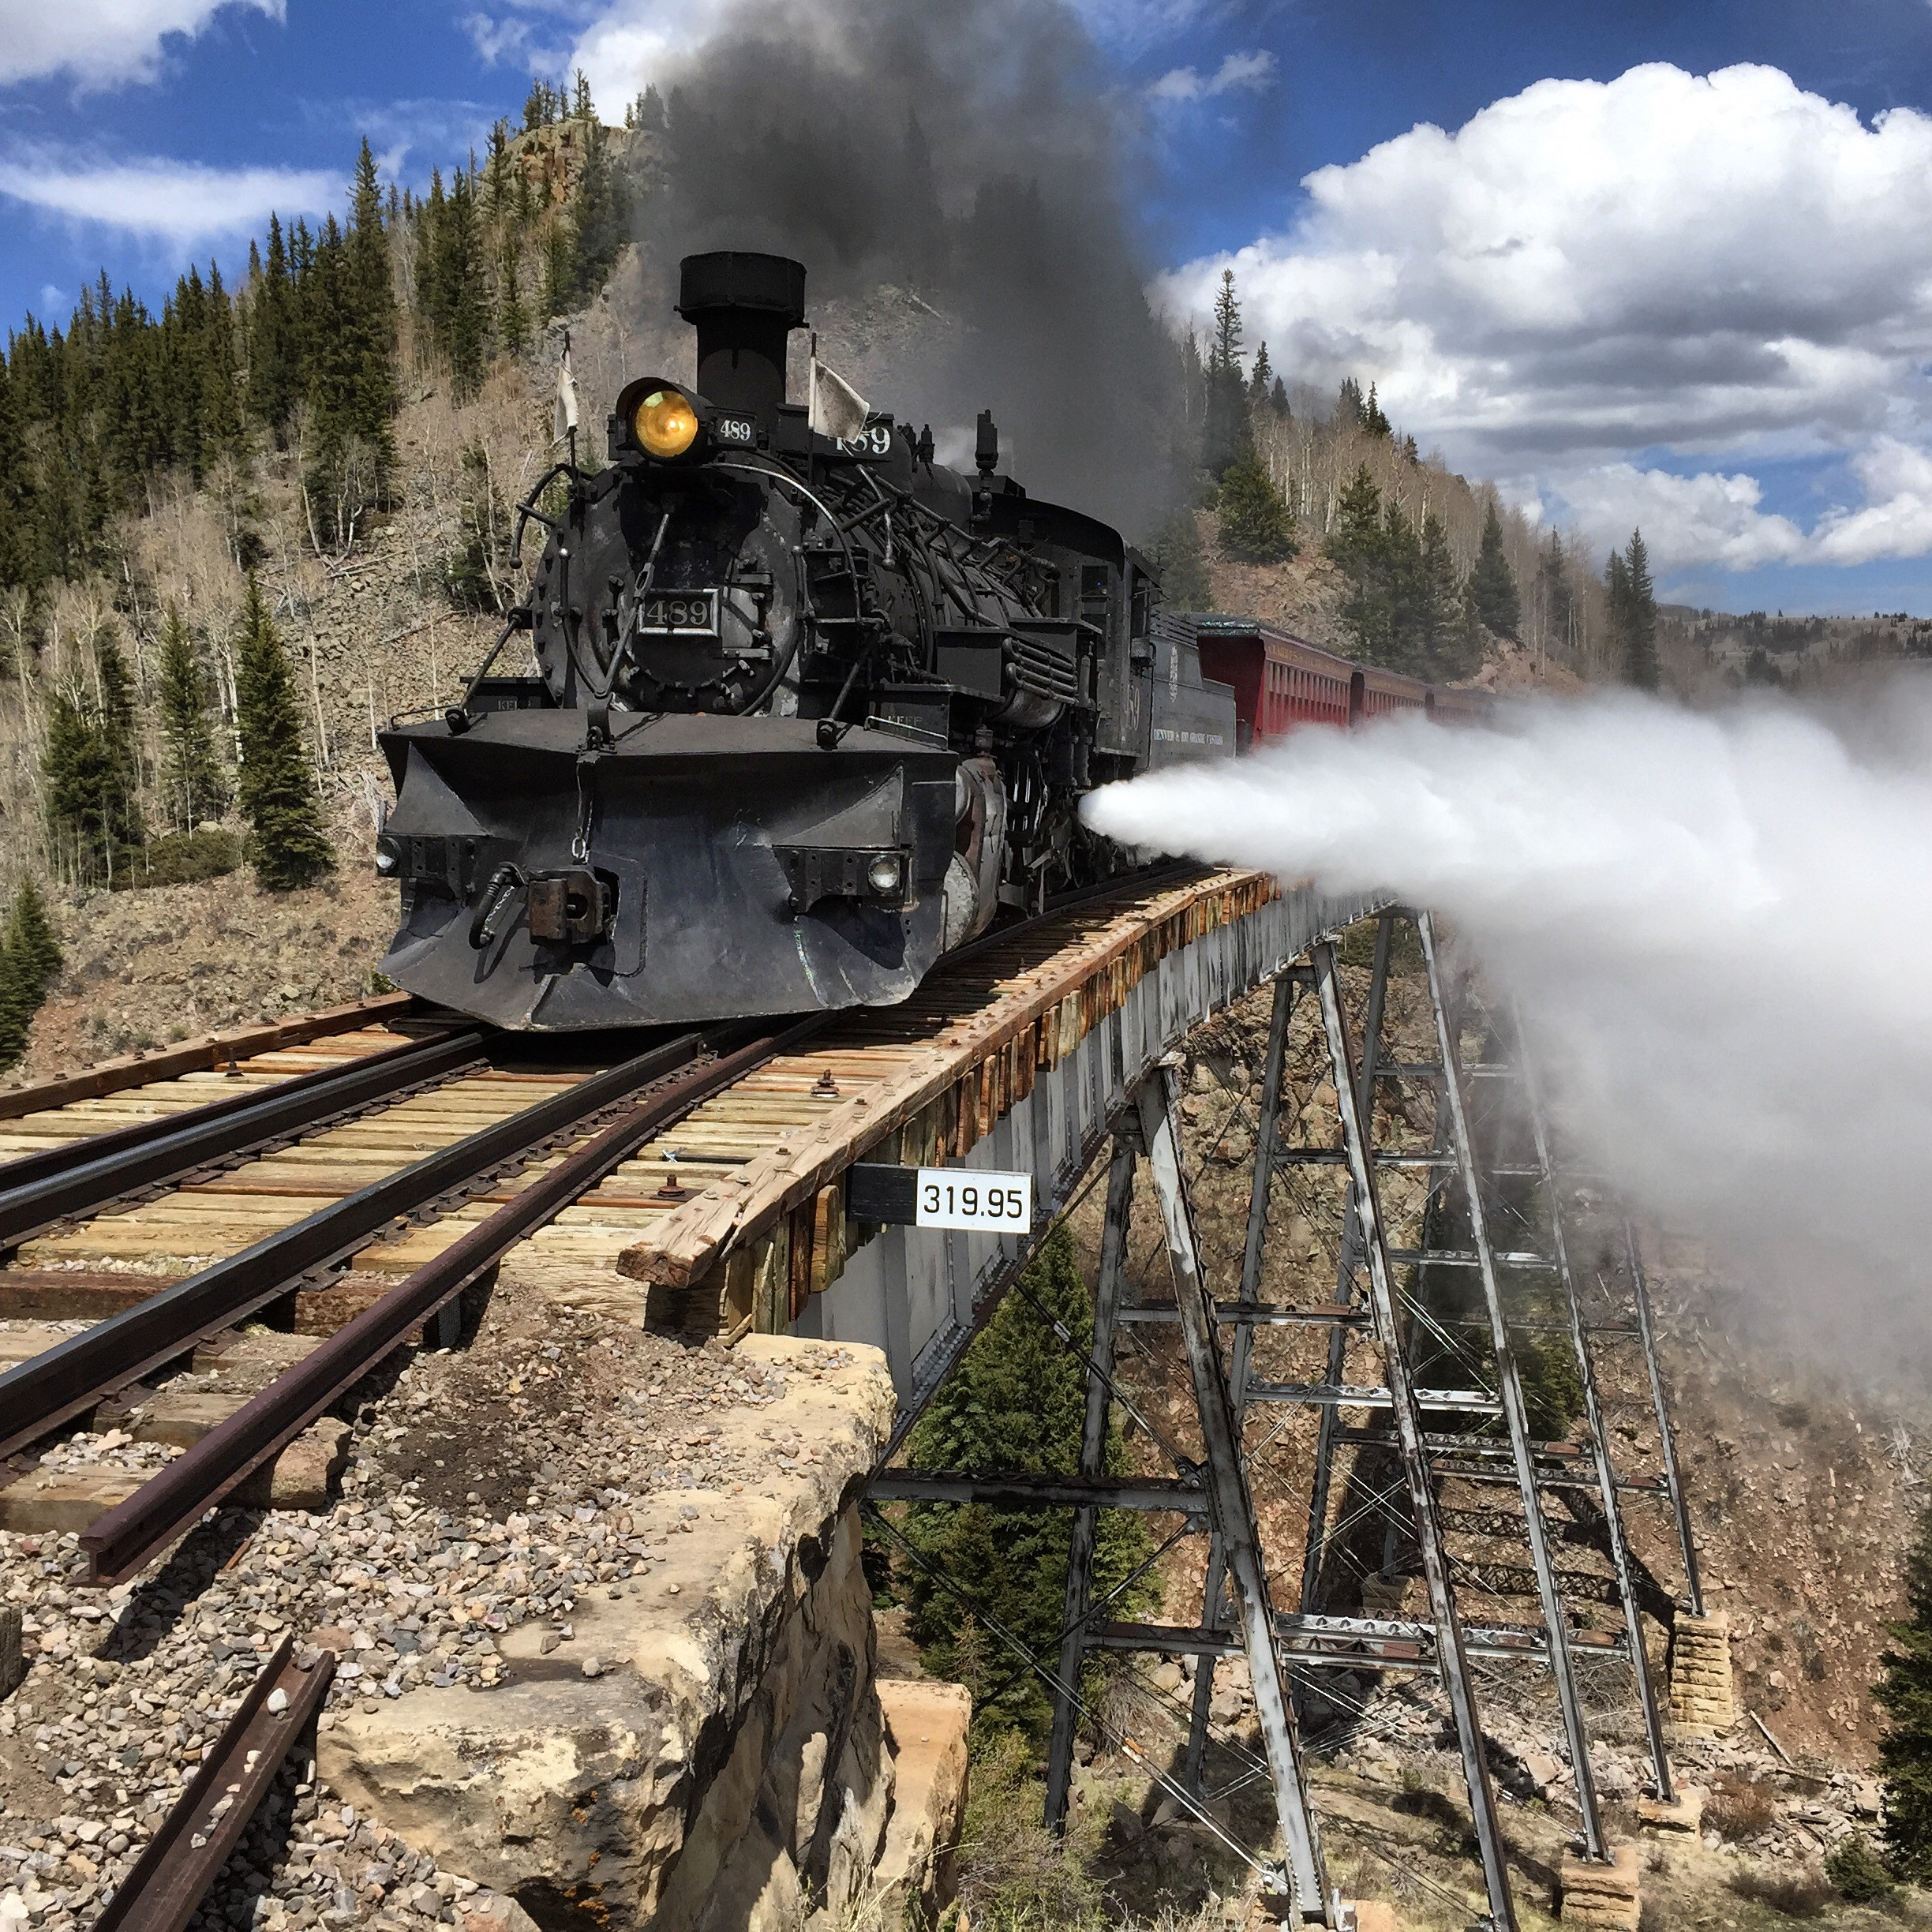 Ninety one year old locomotive #489 blows steam as she comes across Cascade Trestle - Courtesy Cumbres and Toltec Scenic Railroad -